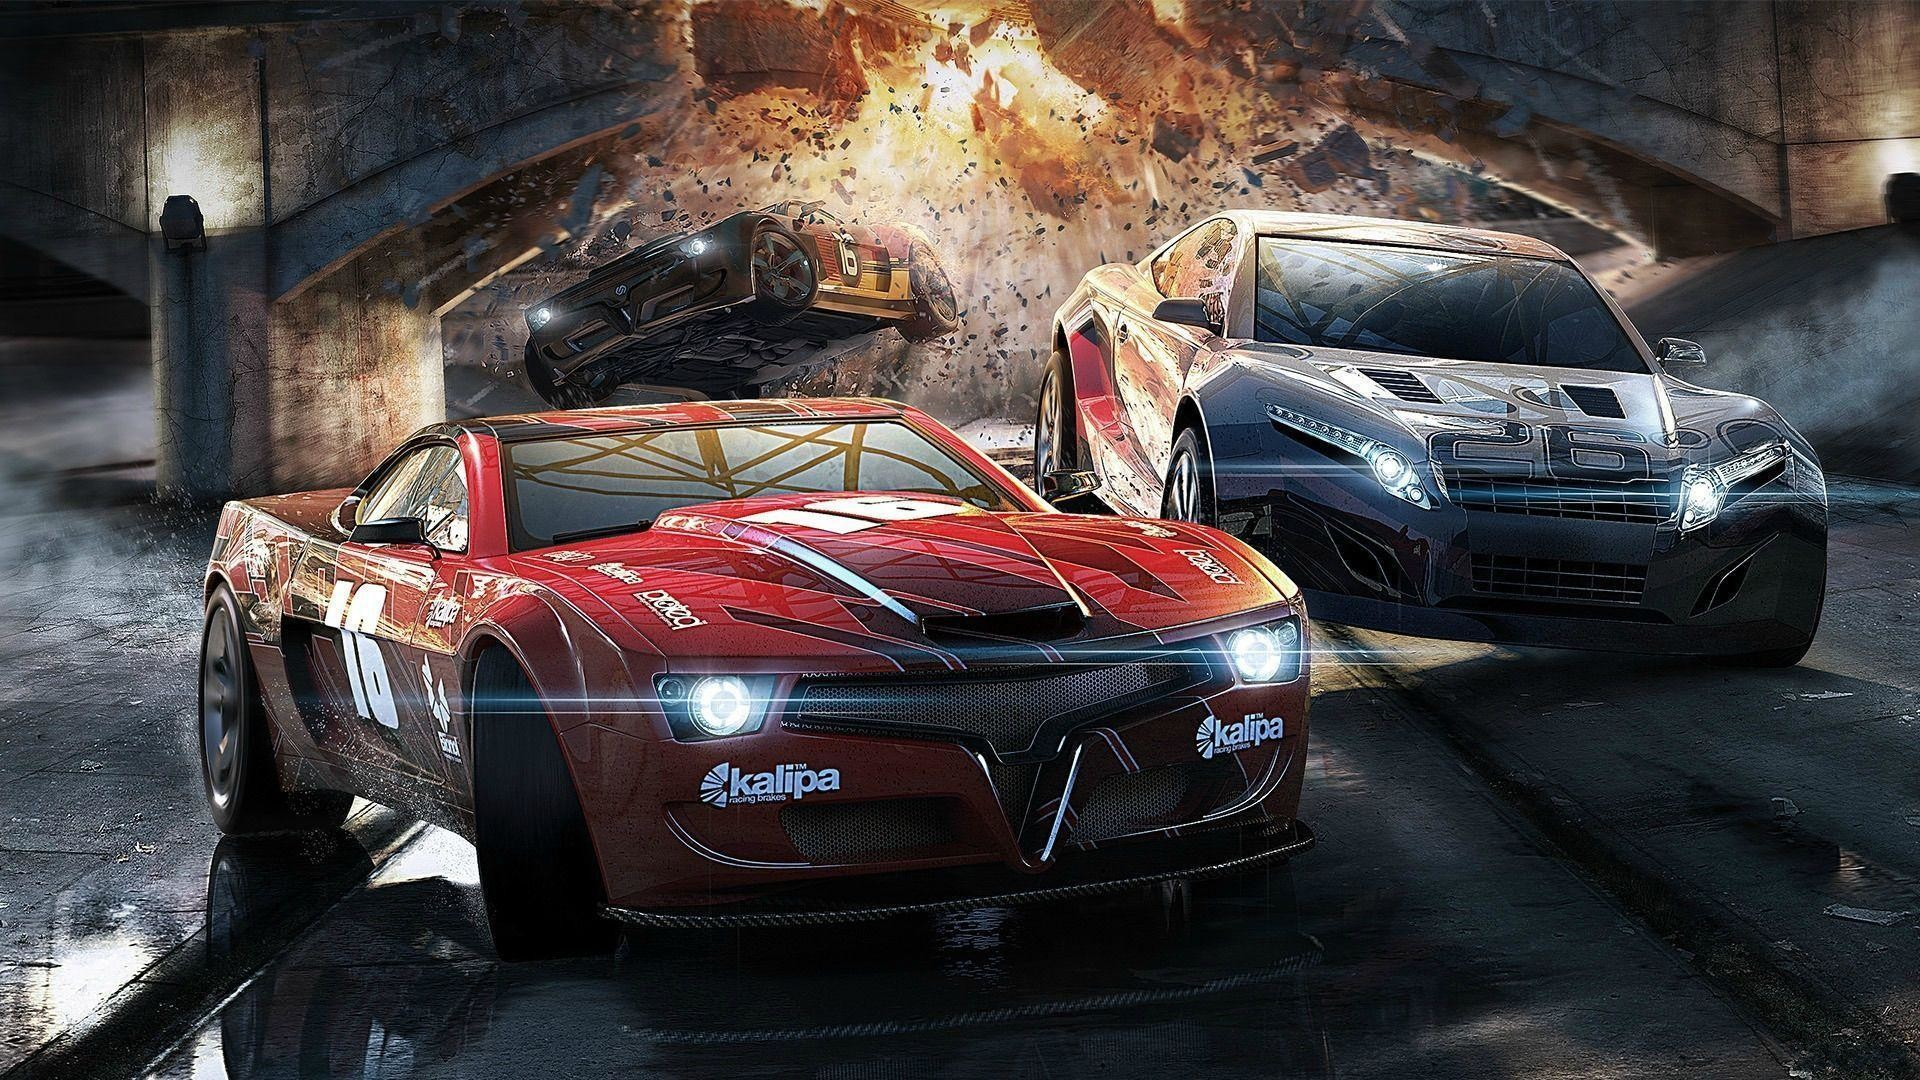 Res: 1920x1080, Street racing cars wallpapers | HD Cars Wallpapers